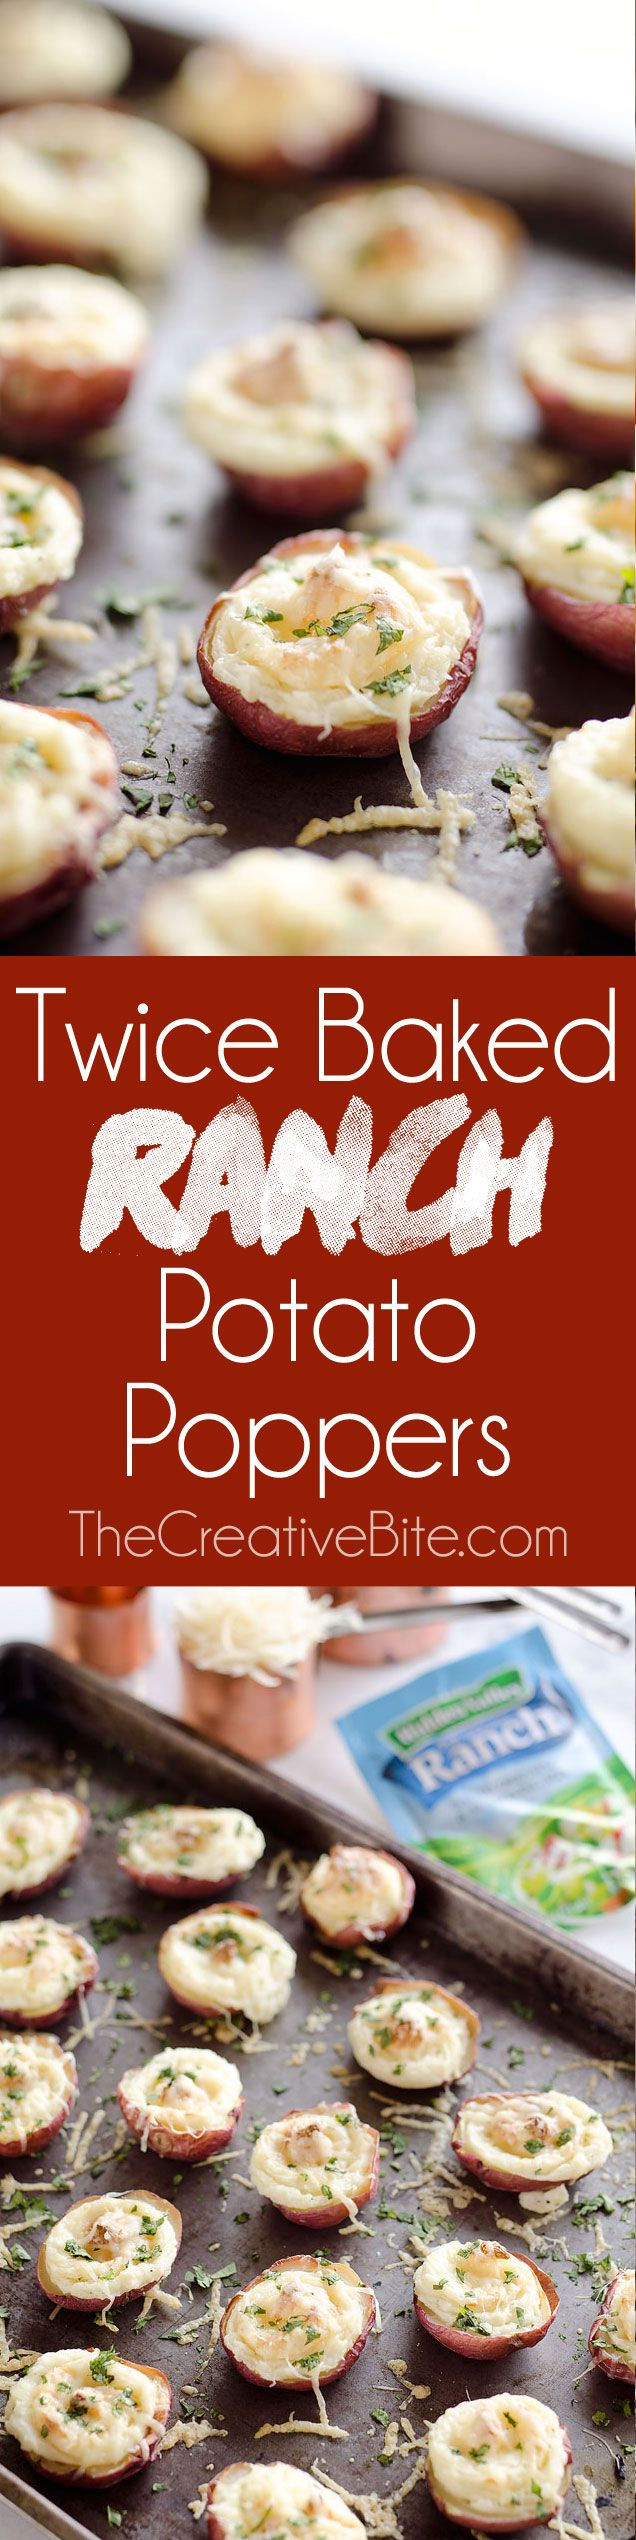 Twice Baked Ranch Potato Poppers - A crowd-pleaser with light and fluffy mashed potatoes mixed with Hidden Valley Ranch seasoning and light sour cream in a potato skin topped with shredded Parmesan for the perfect bite-sized appetizer!